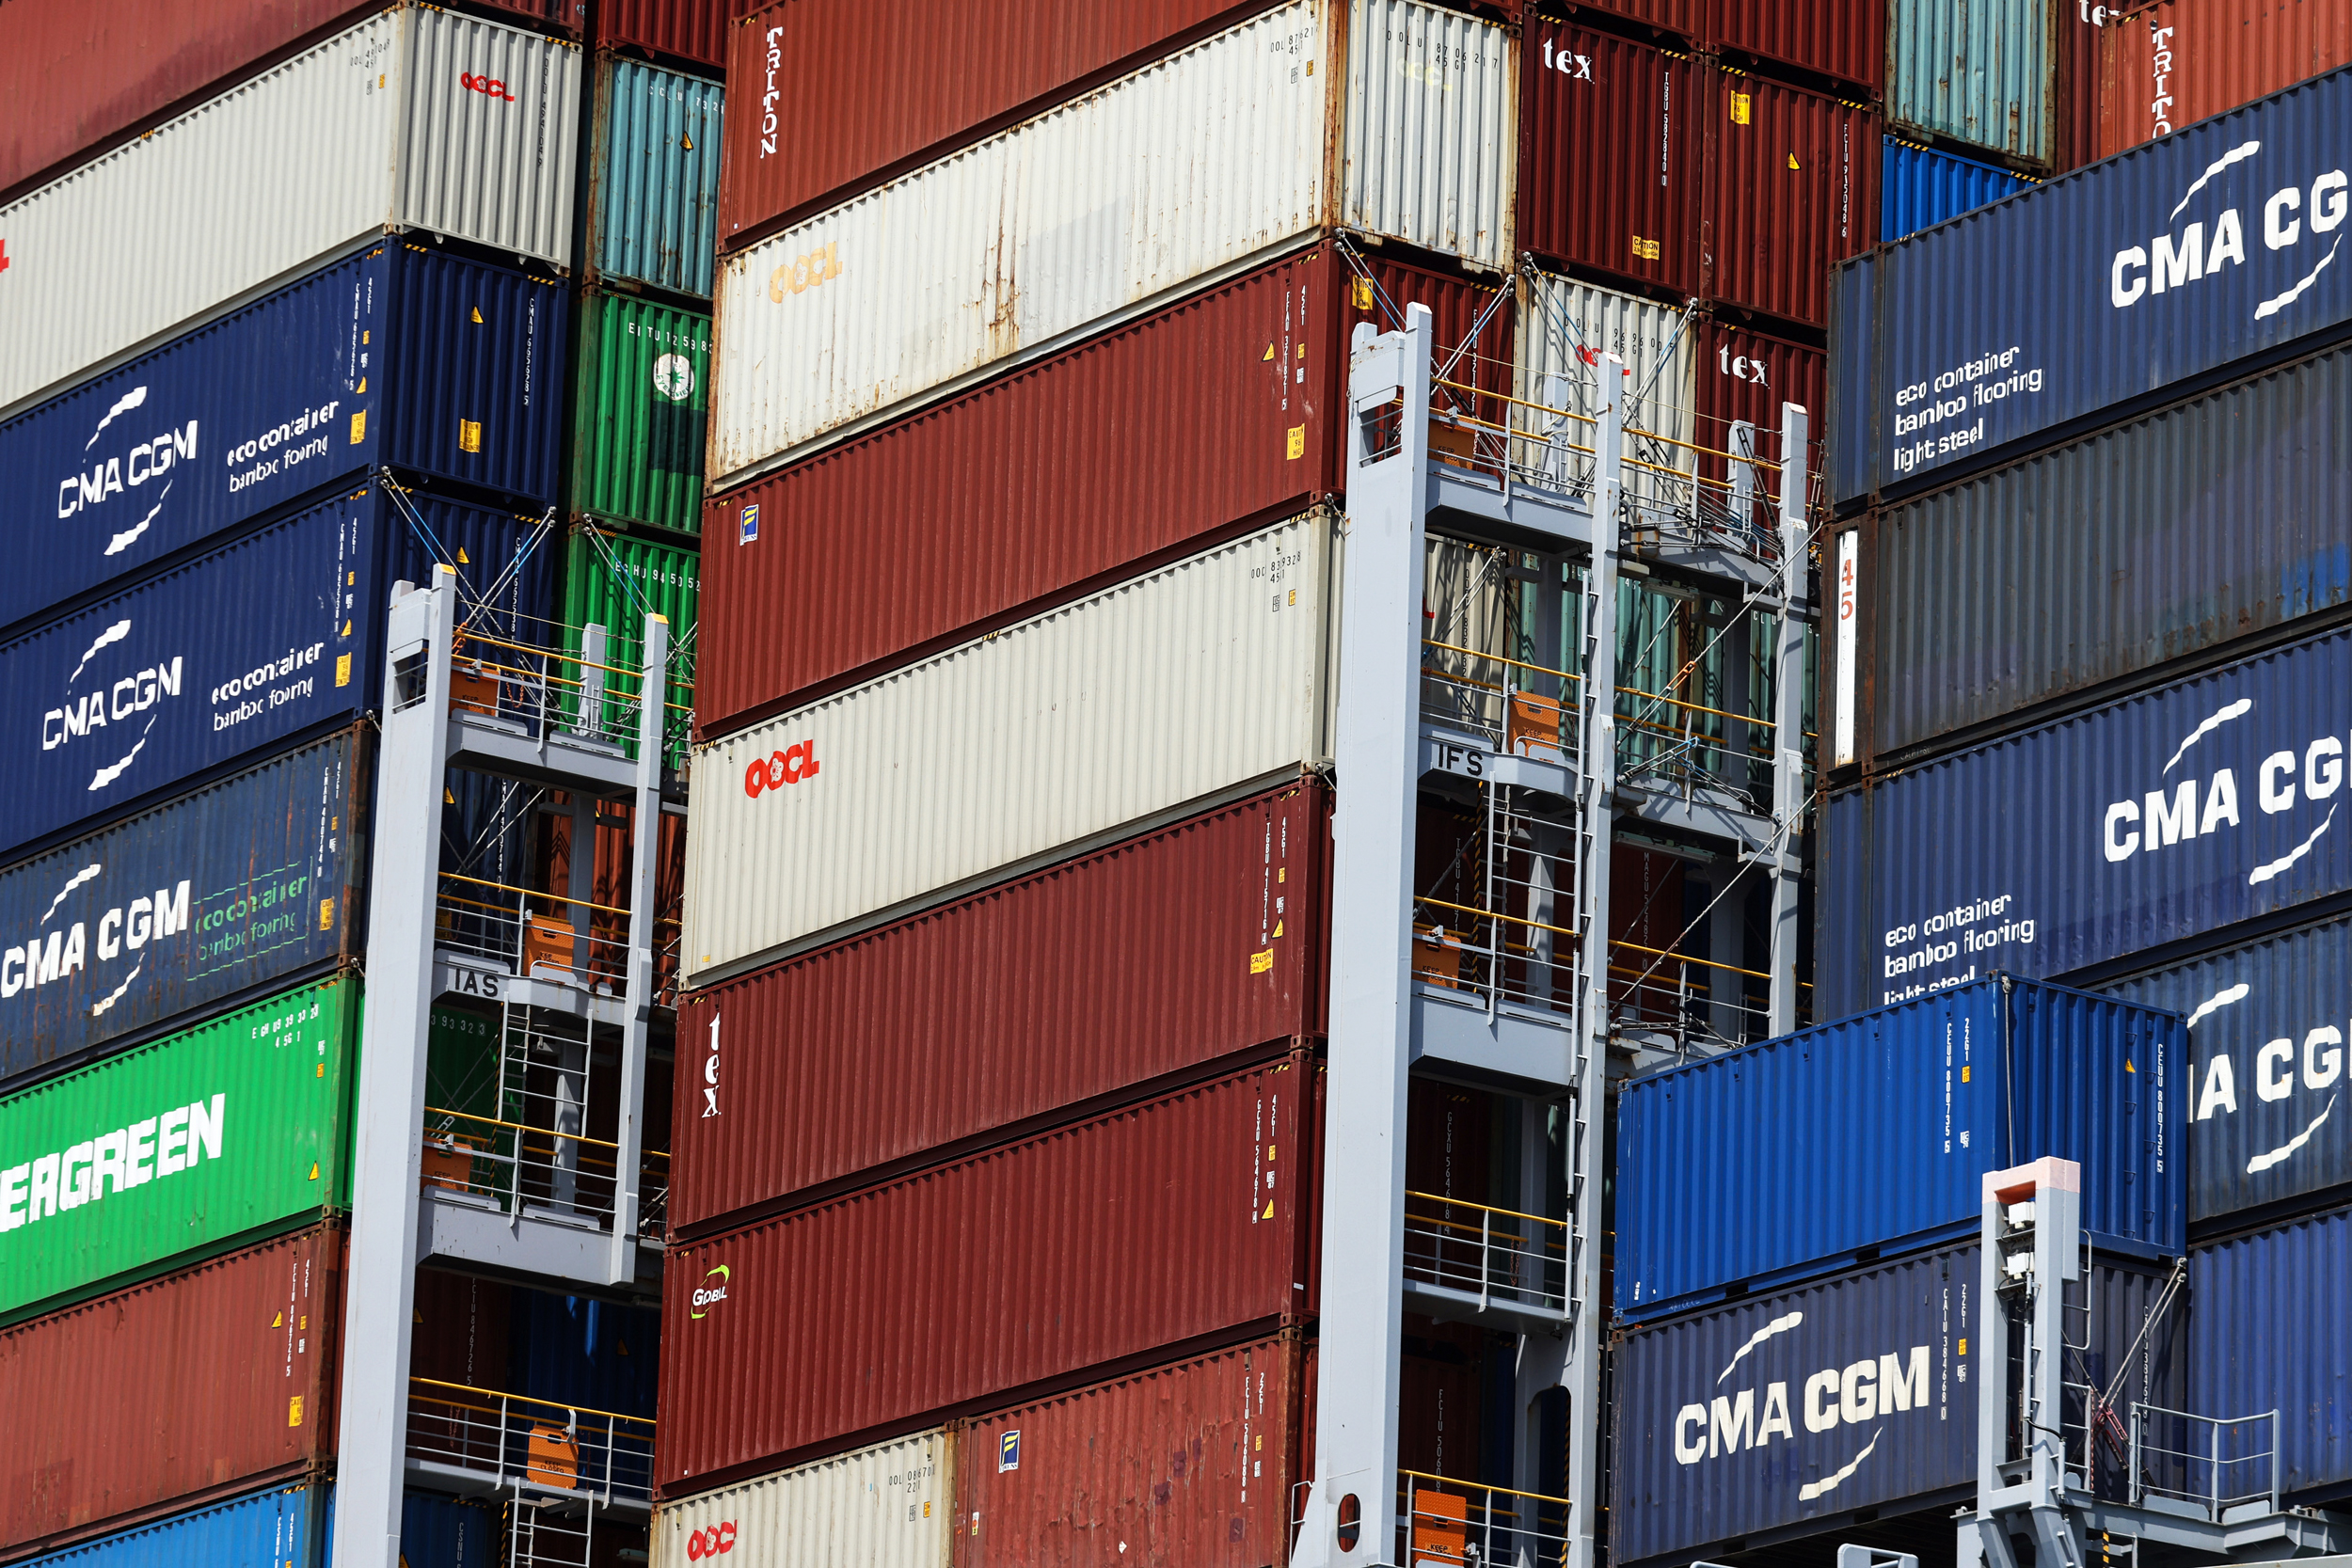 The shipping supply chain is stressed from Covid. That makes it ripe for hackers.